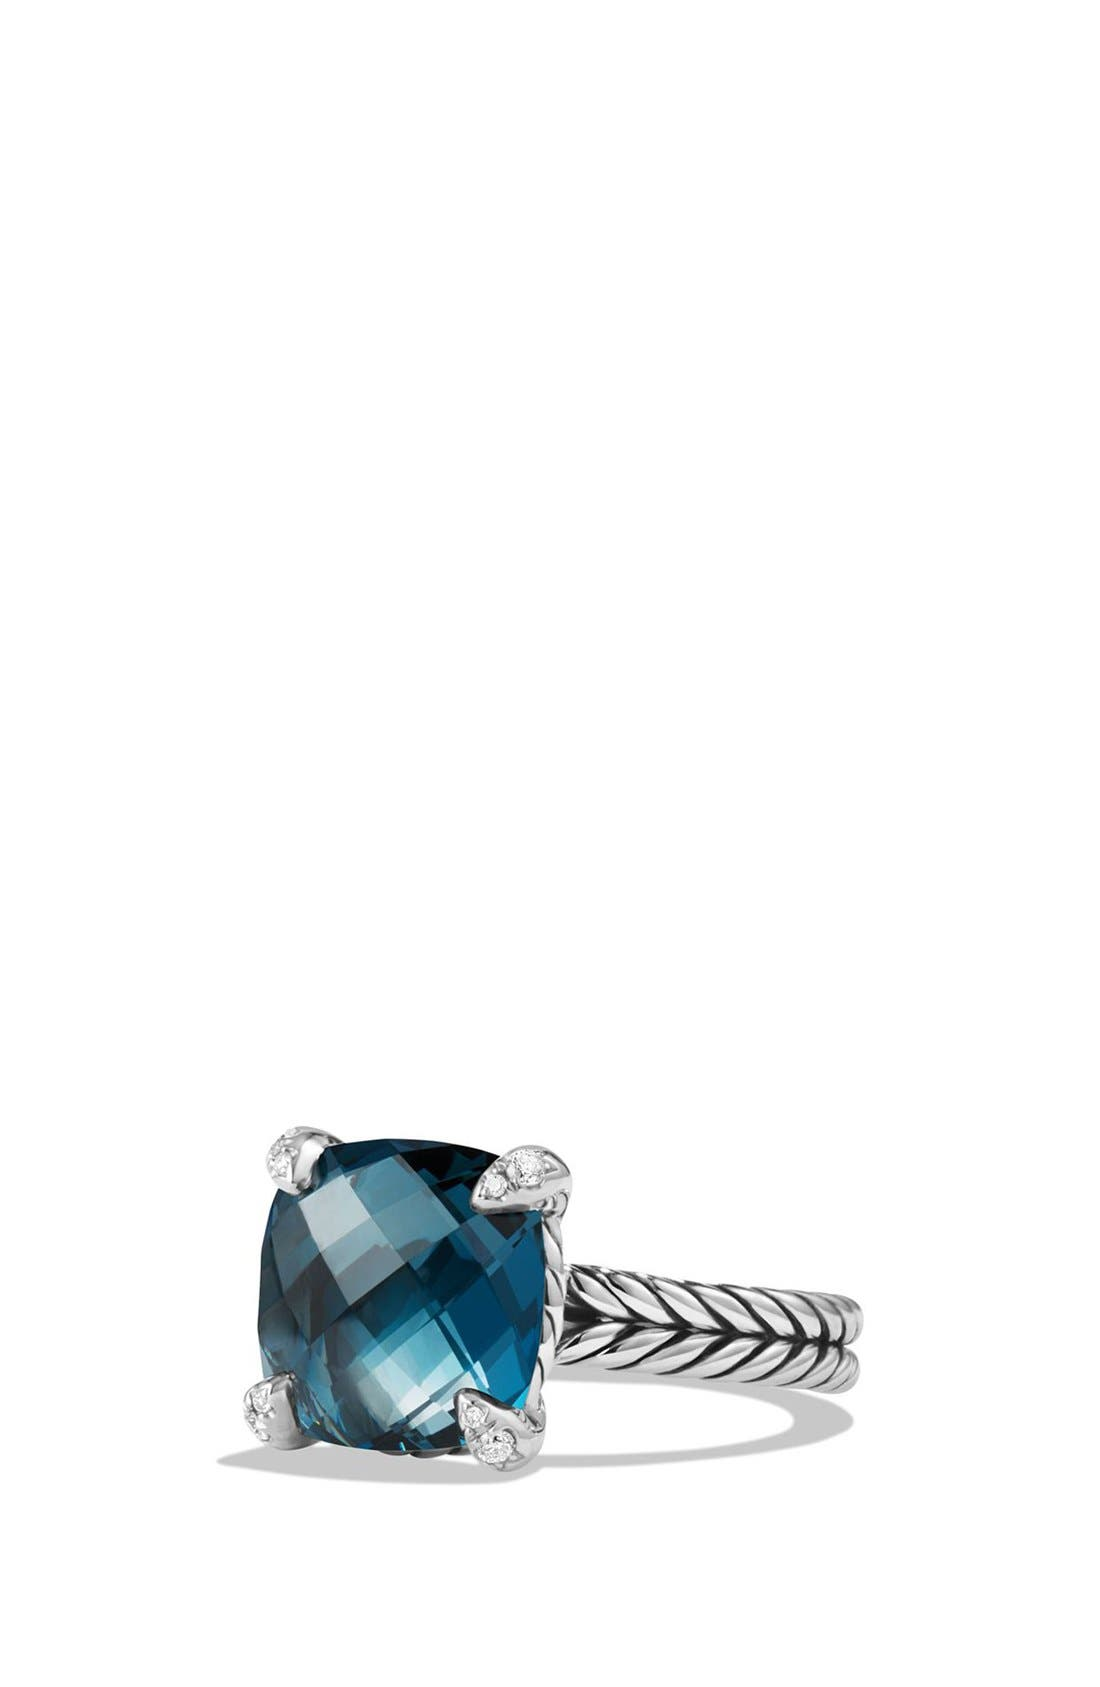 Alternate Image 1 Selected - David Yurman 'Châtelaine' Ring with Semiprecious Stone and Diamonds